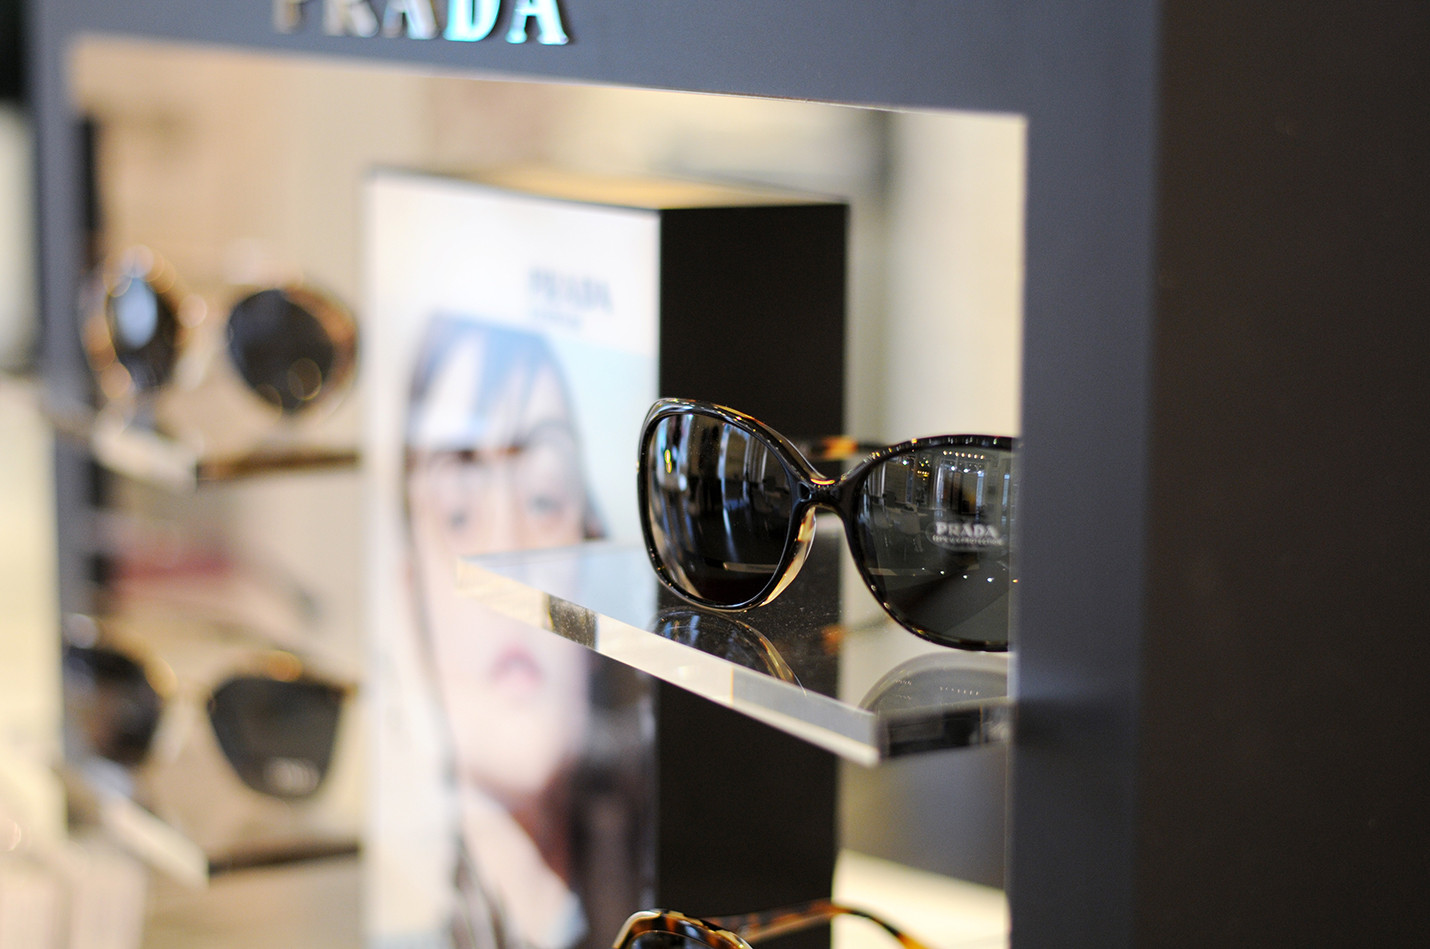 Optik_Boehmer_Prada_Detail_100.jpg